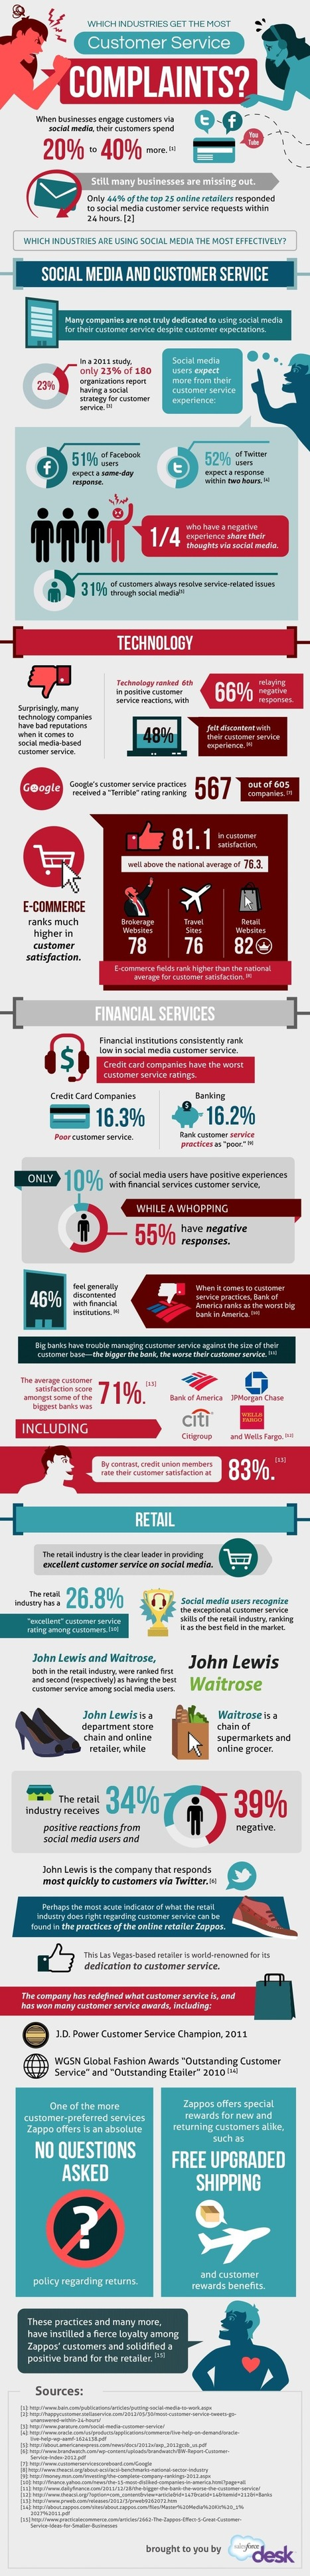 What Industries Get the Most Customer Service Complaints? Infographic | Viral Classified News | Scoop.it